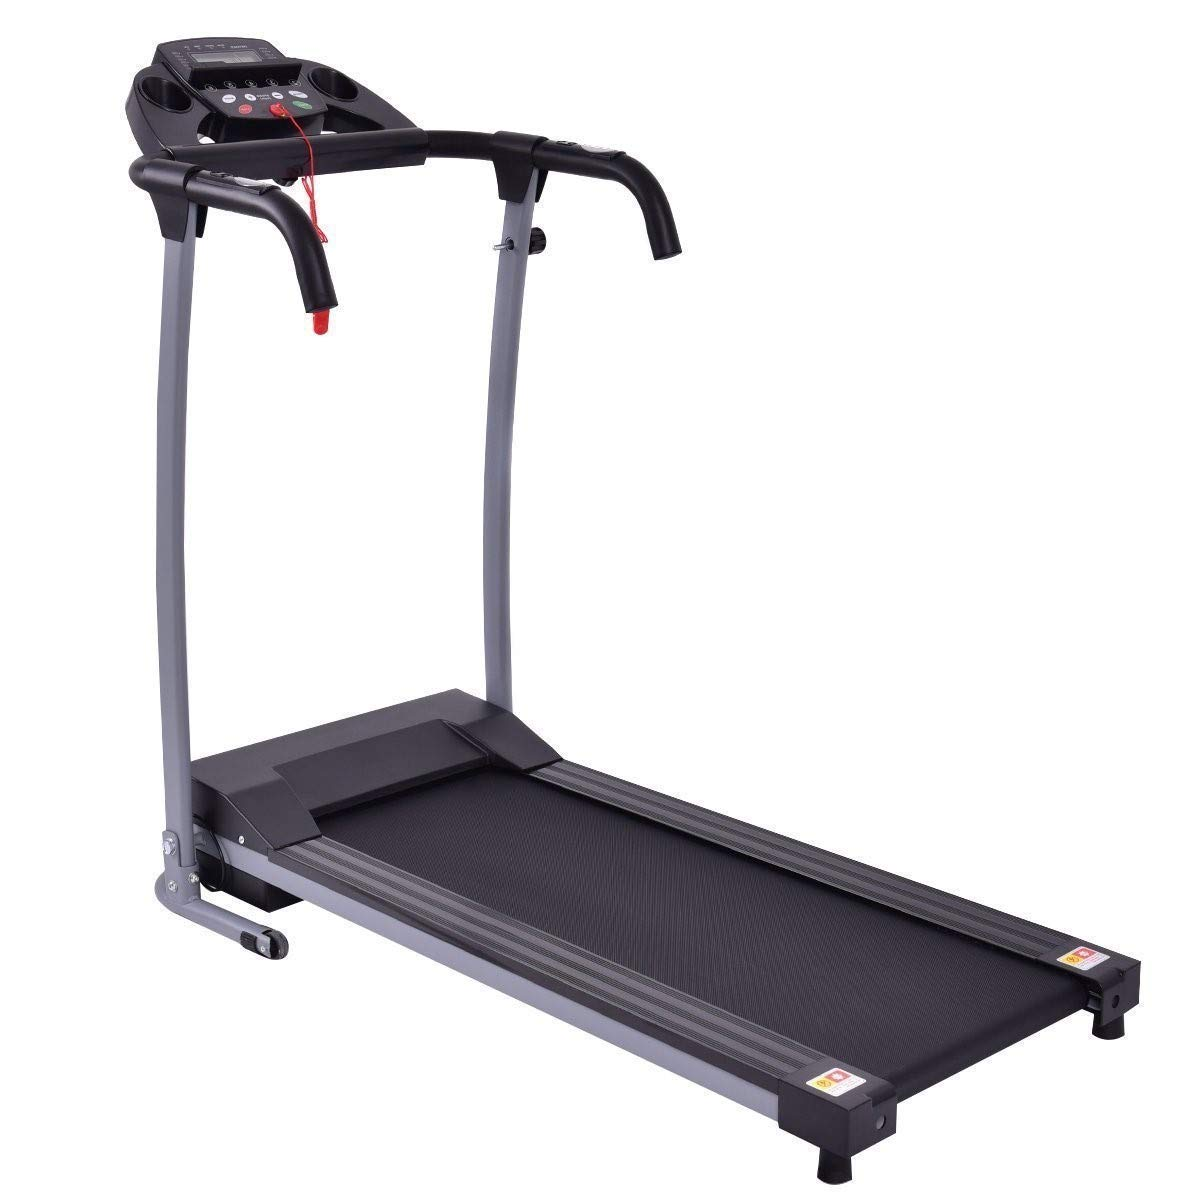 GYMAX Folding Exercise Treadmill Fitness Electric Treadmill Electric Motorized Power Fitness Running Machine 800W W/IPAD Mobile Phone Holder (Black) by GYMAX (Image #1)